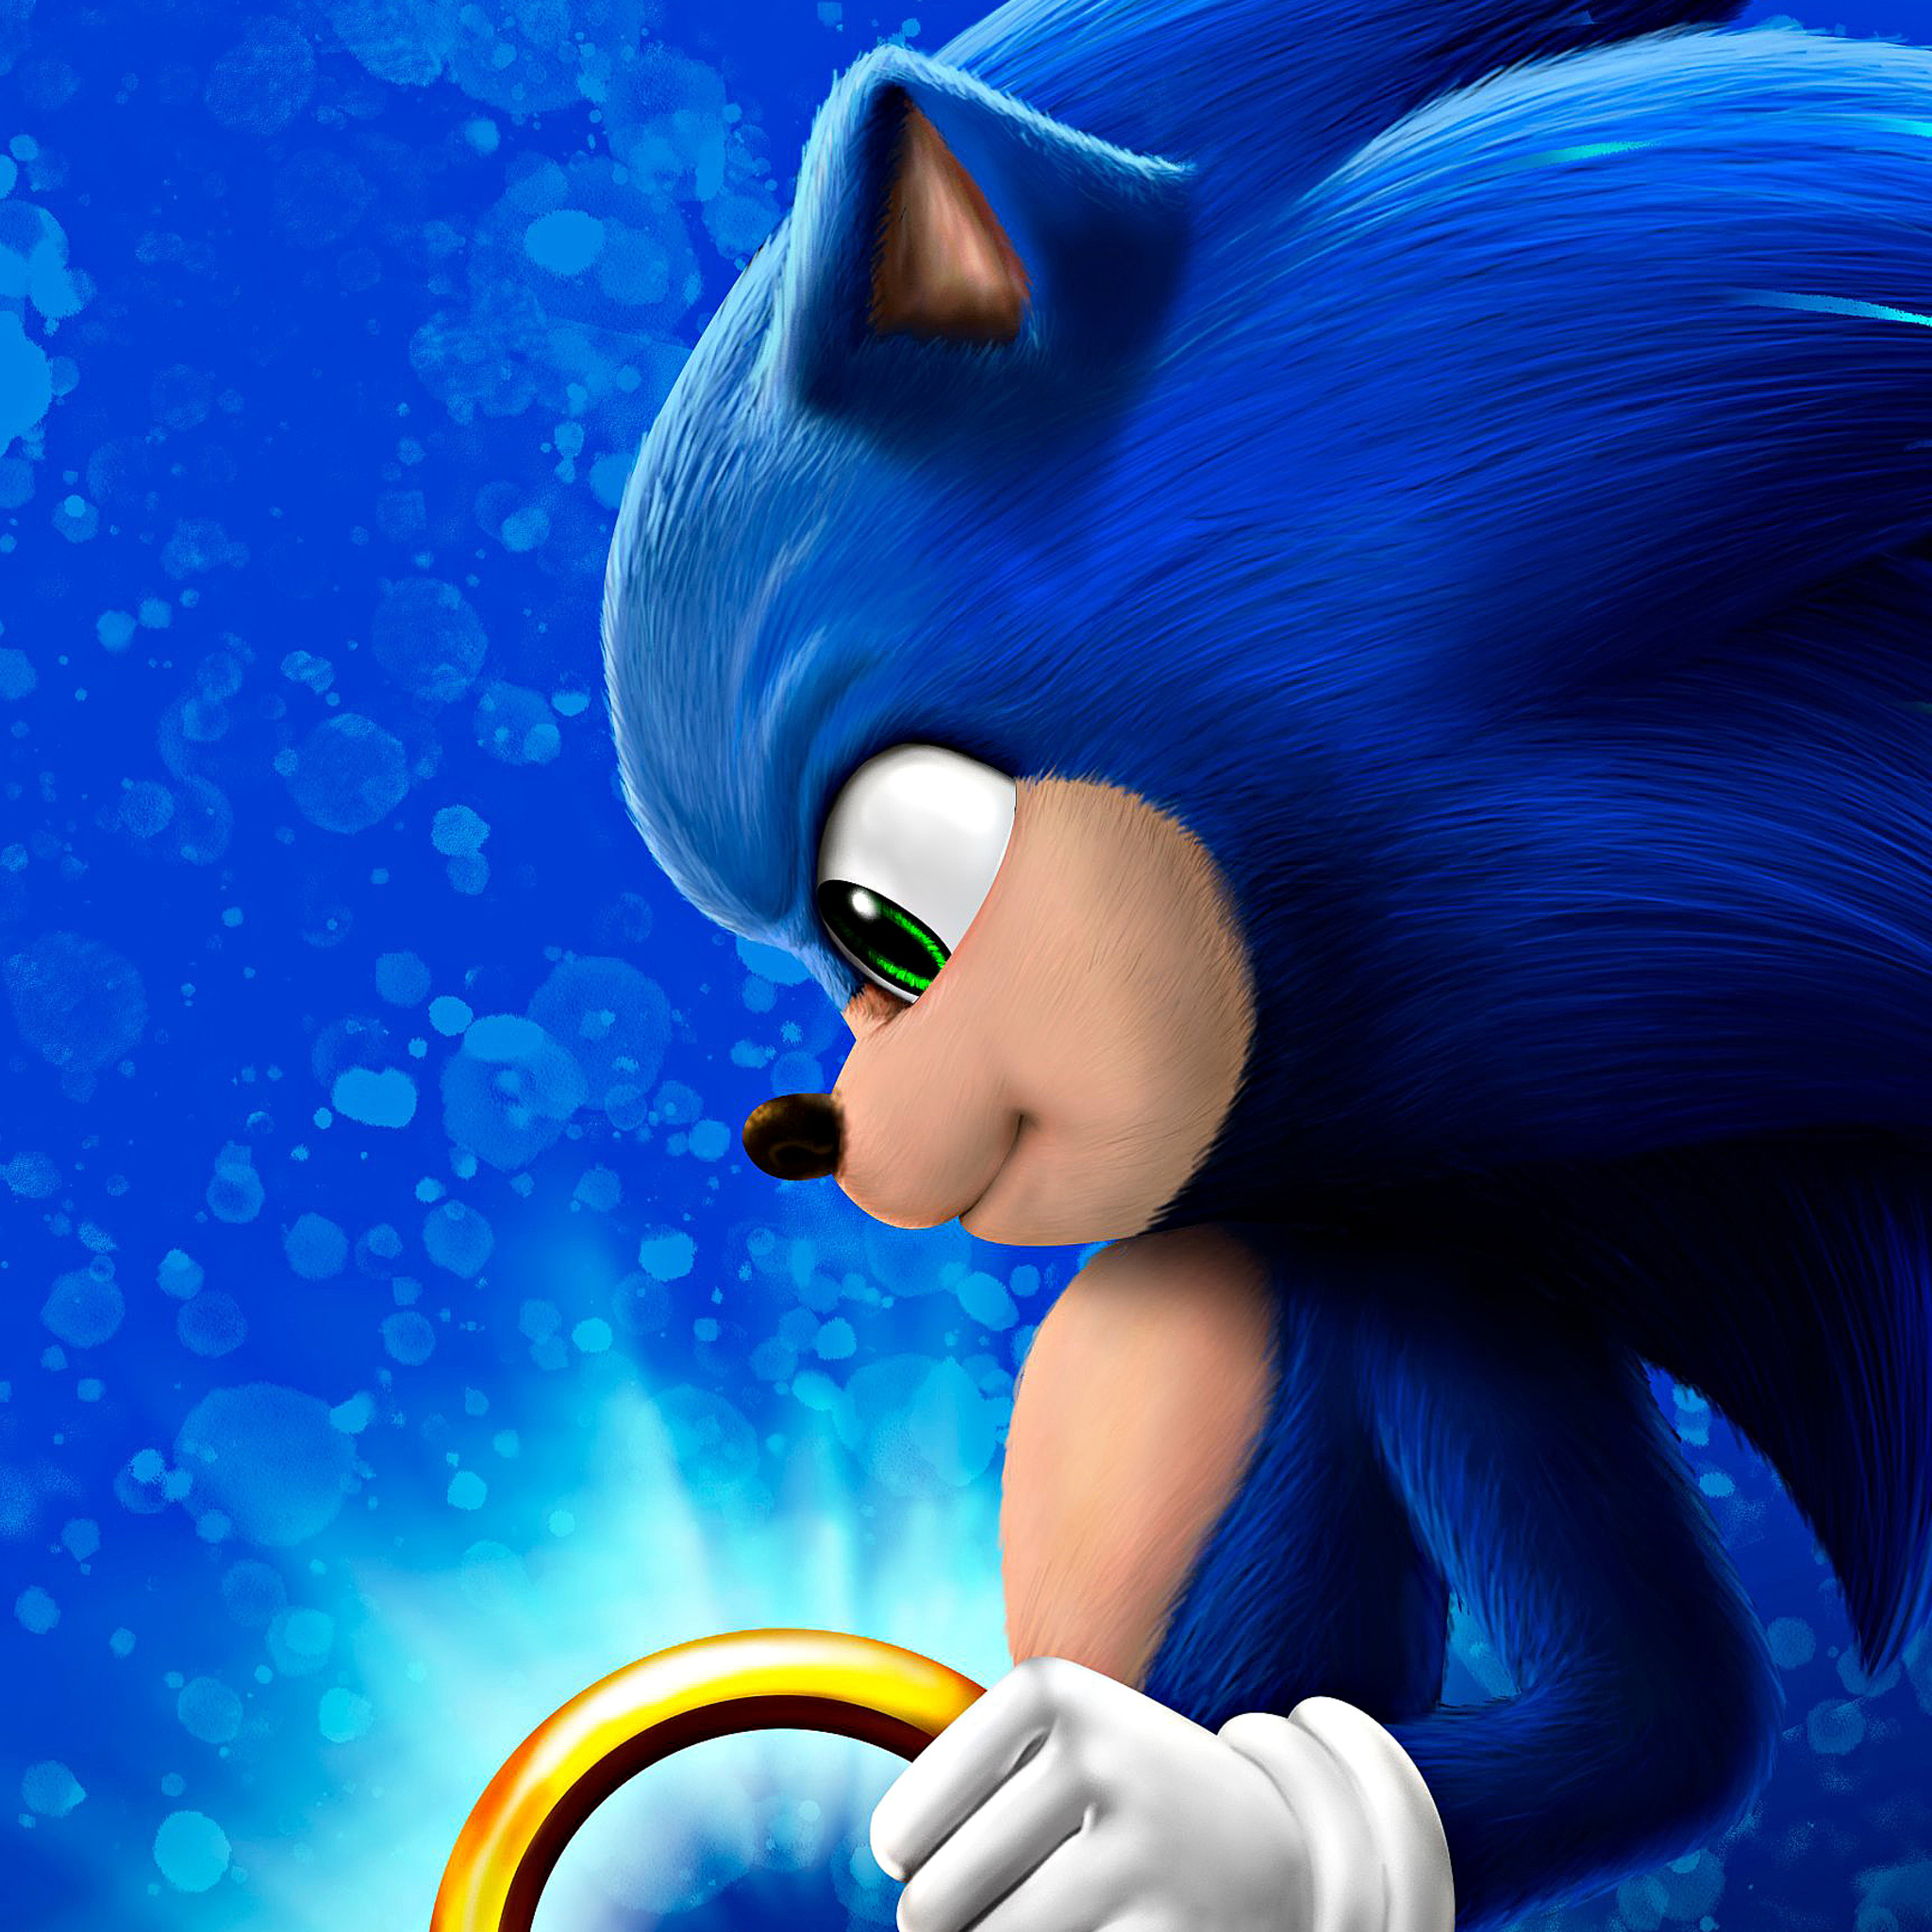 2048x2048 Sonic The Hedgehog4k2020 Ipad Air Hd 4k Wallpapers Images Backgrounds Photos And Pictures